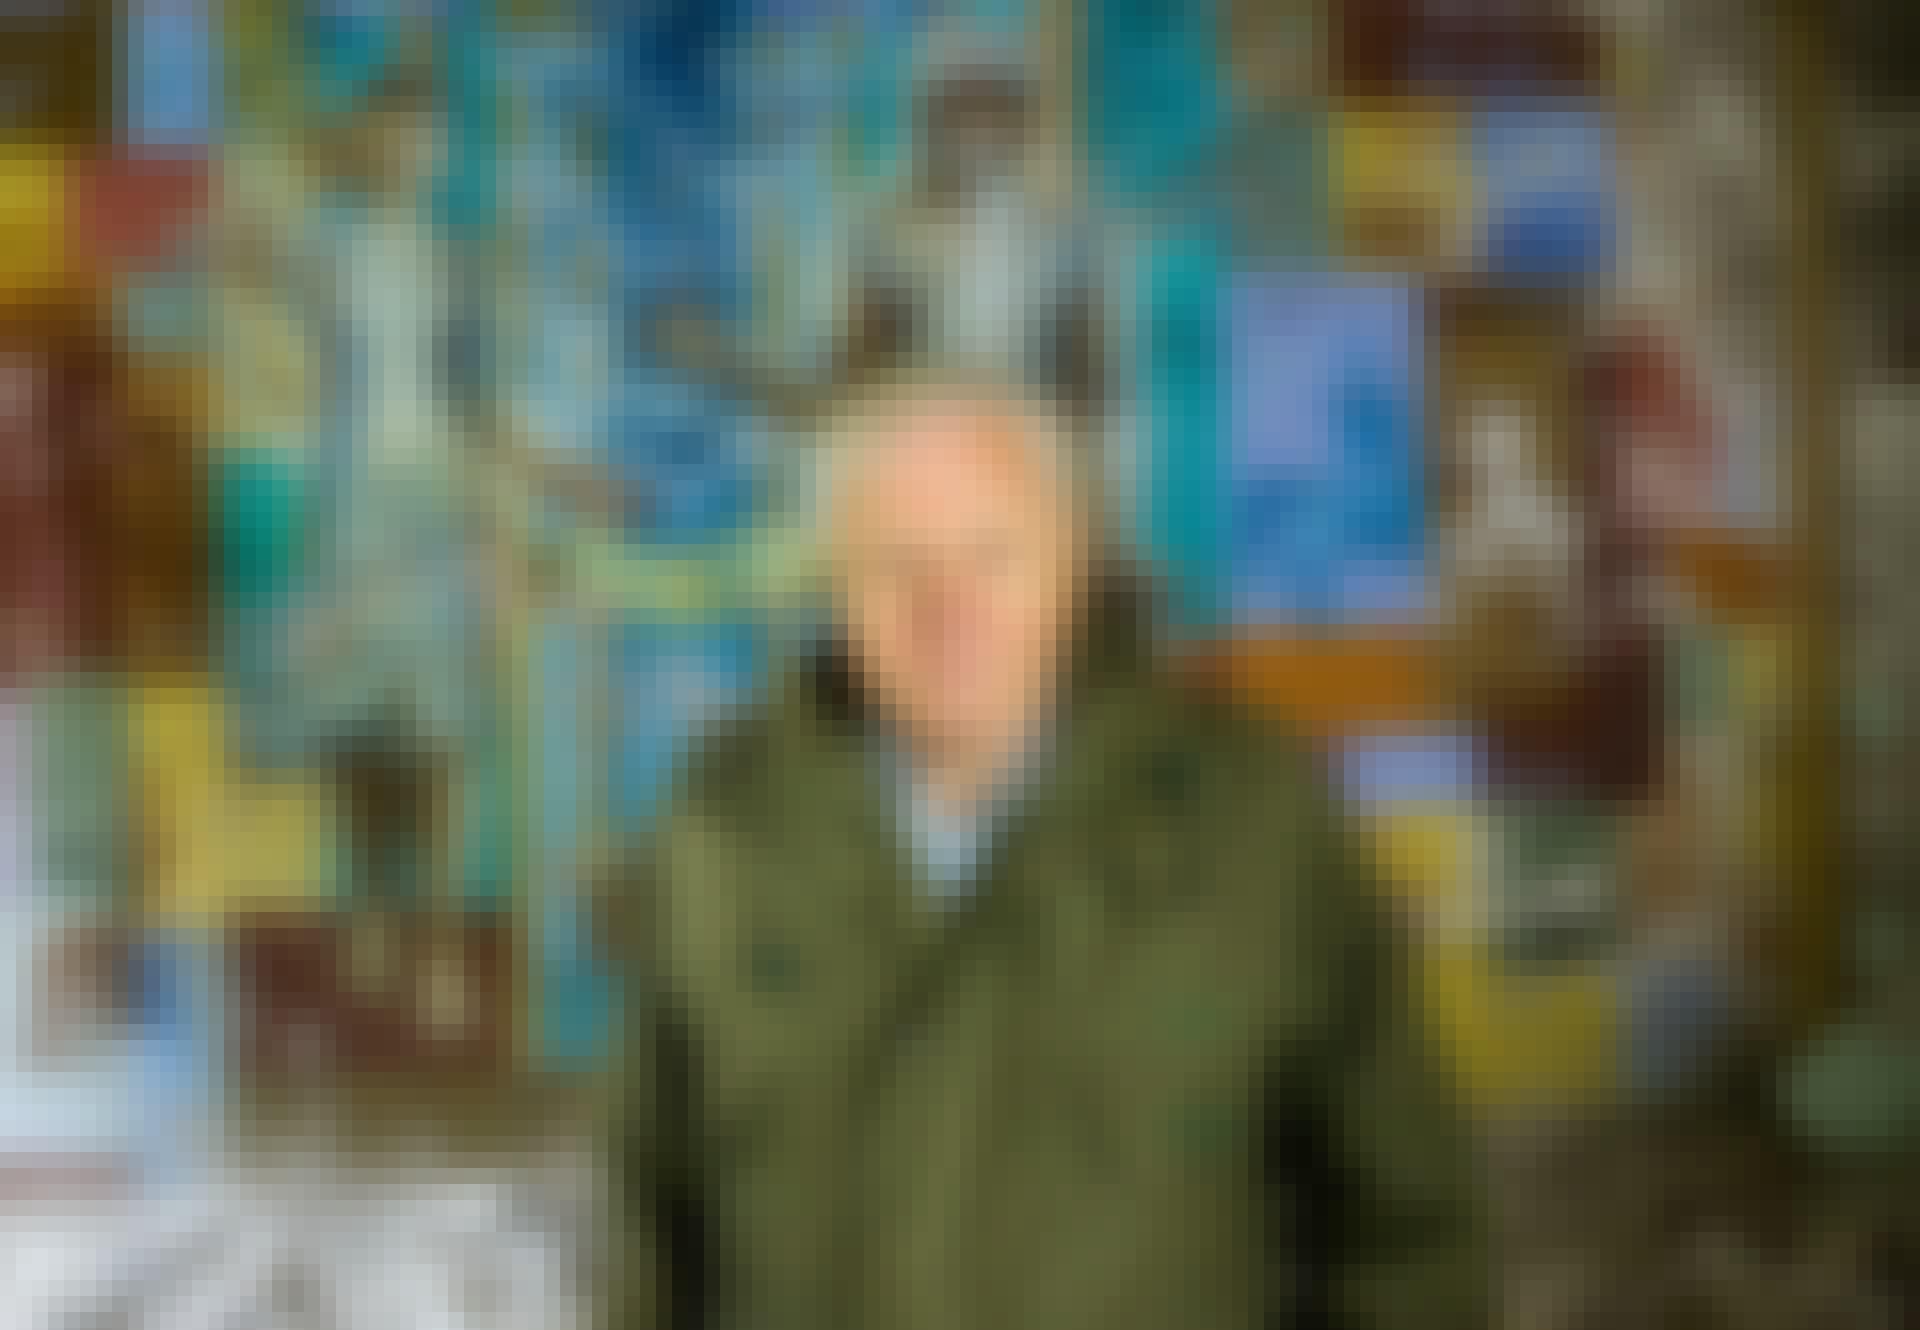 Sir David Attenborough foran en ødelagt murstensmur med grafitti